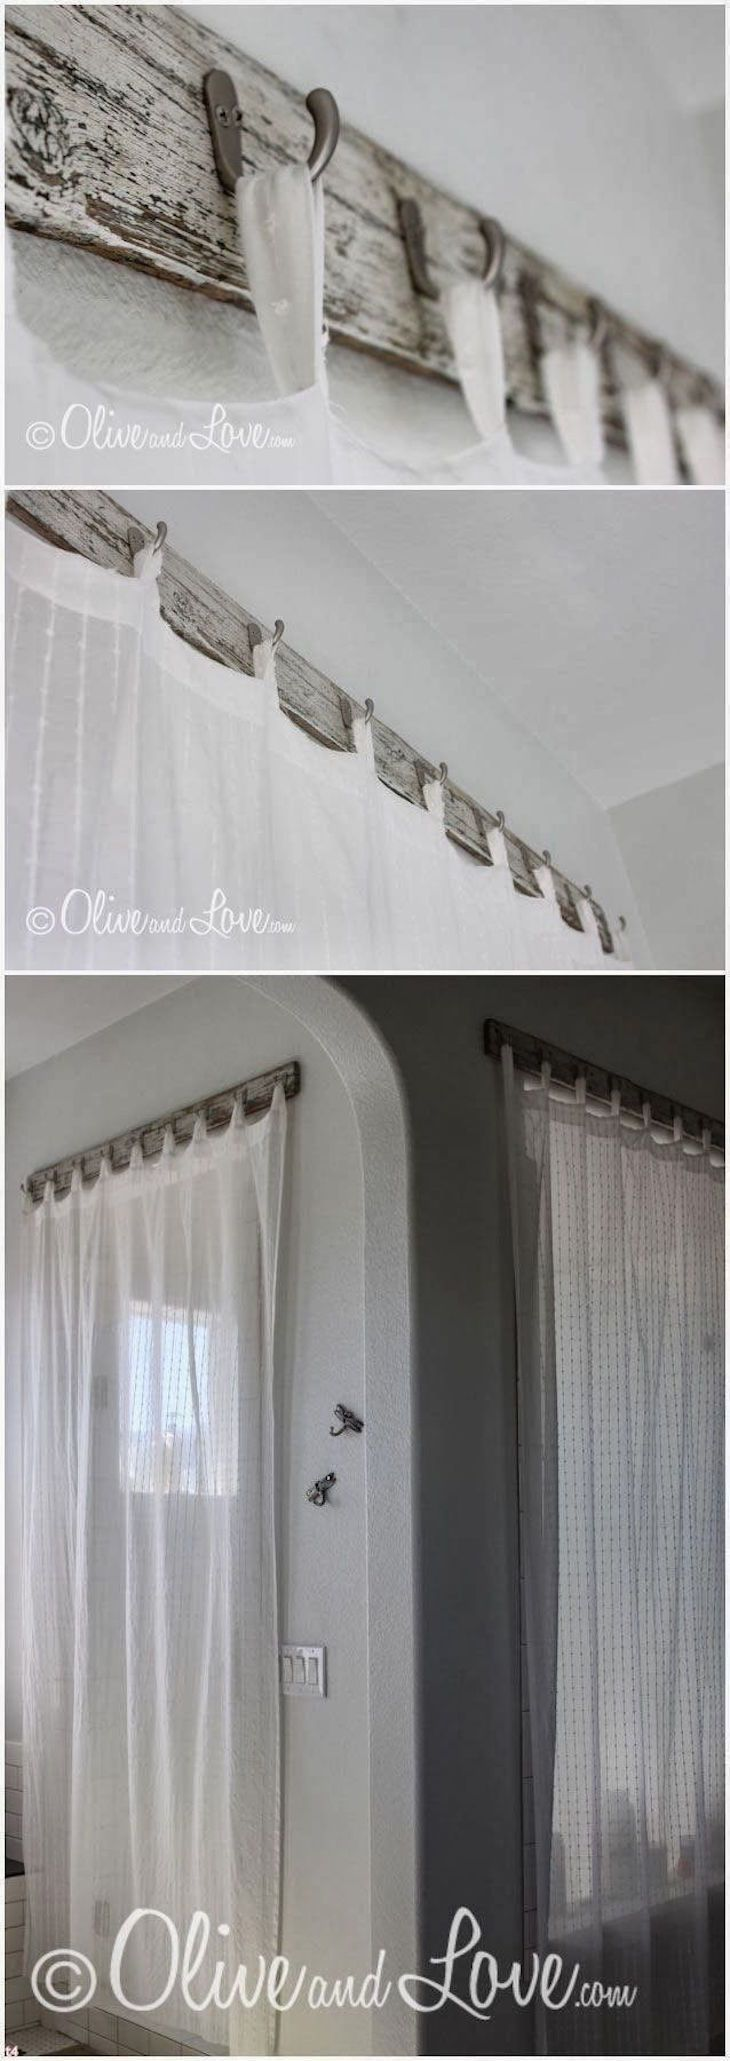 Not only curtains but also a stylish curtain rods can brighten up your space. Th...